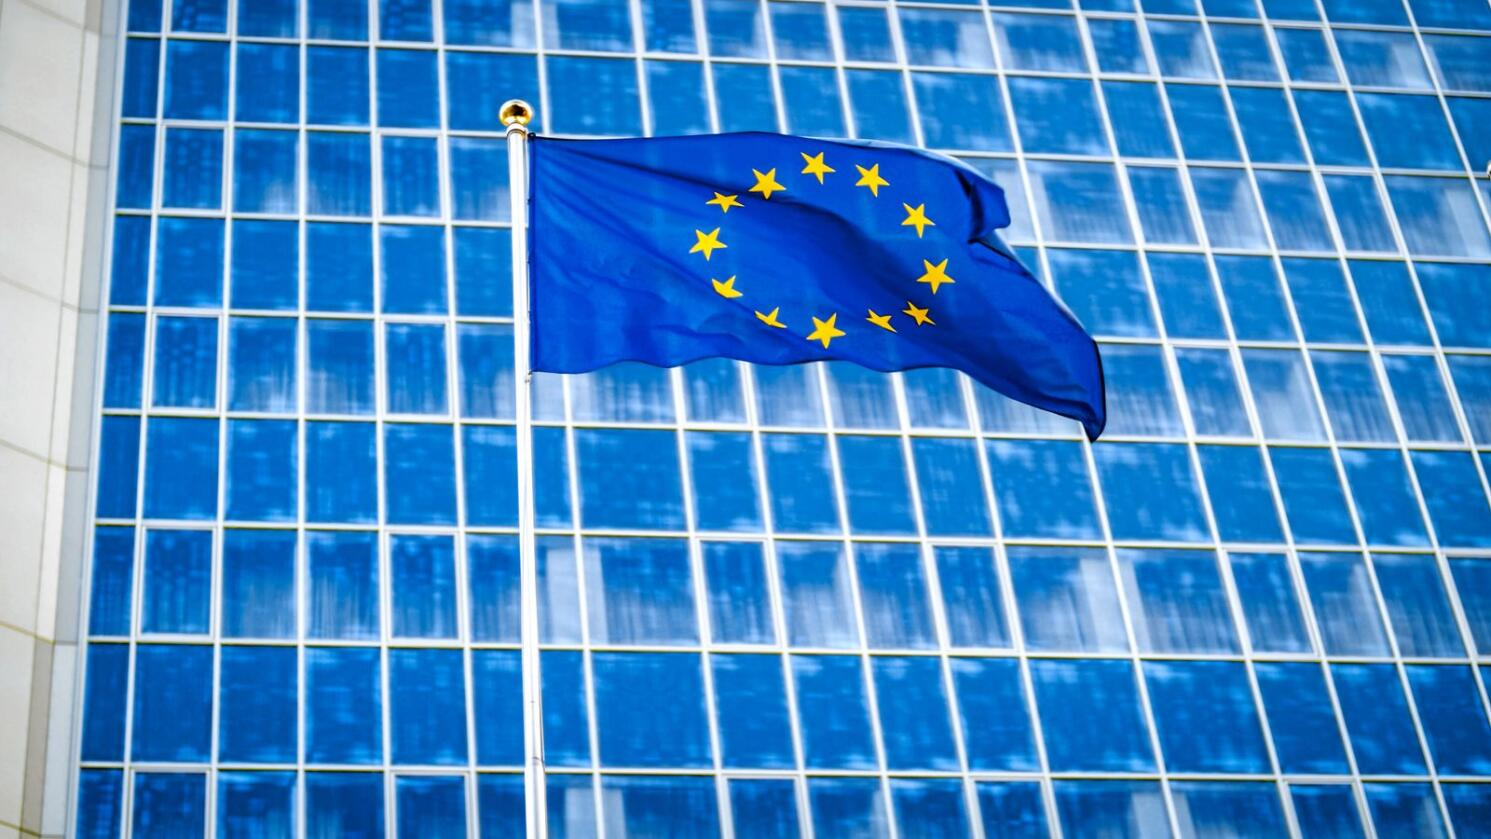 Photo of EU flag fluttering on wind against high business office building made of concerete and glass. Concept of ecenomics, development, government and politics